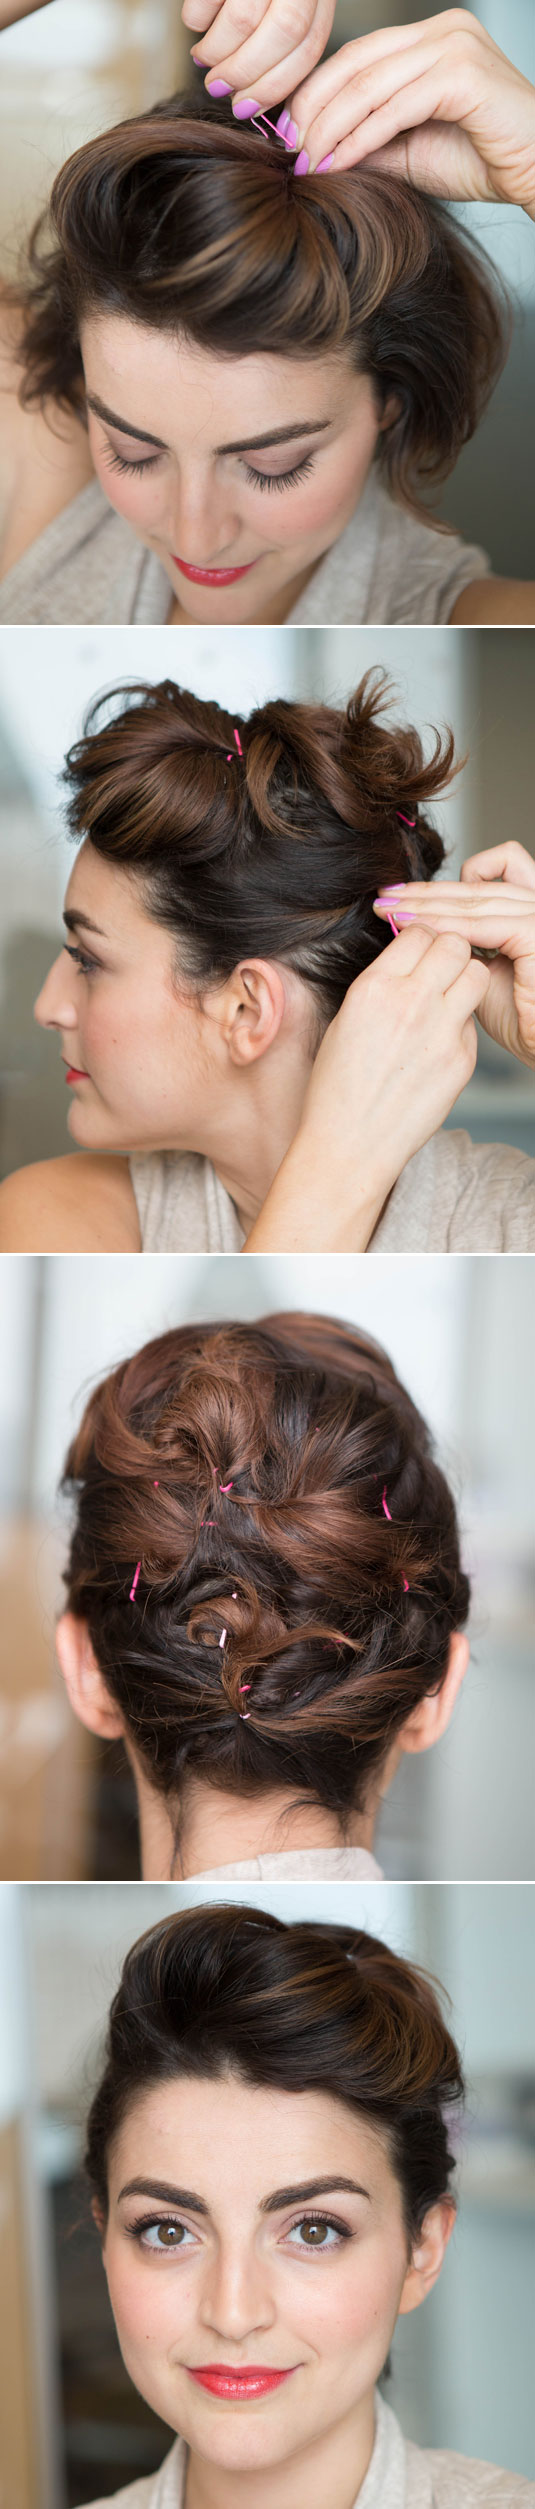 Whip up an updo on super-short hair by creating a pompadour, and then twist and pin your loose hairs haphazardly.